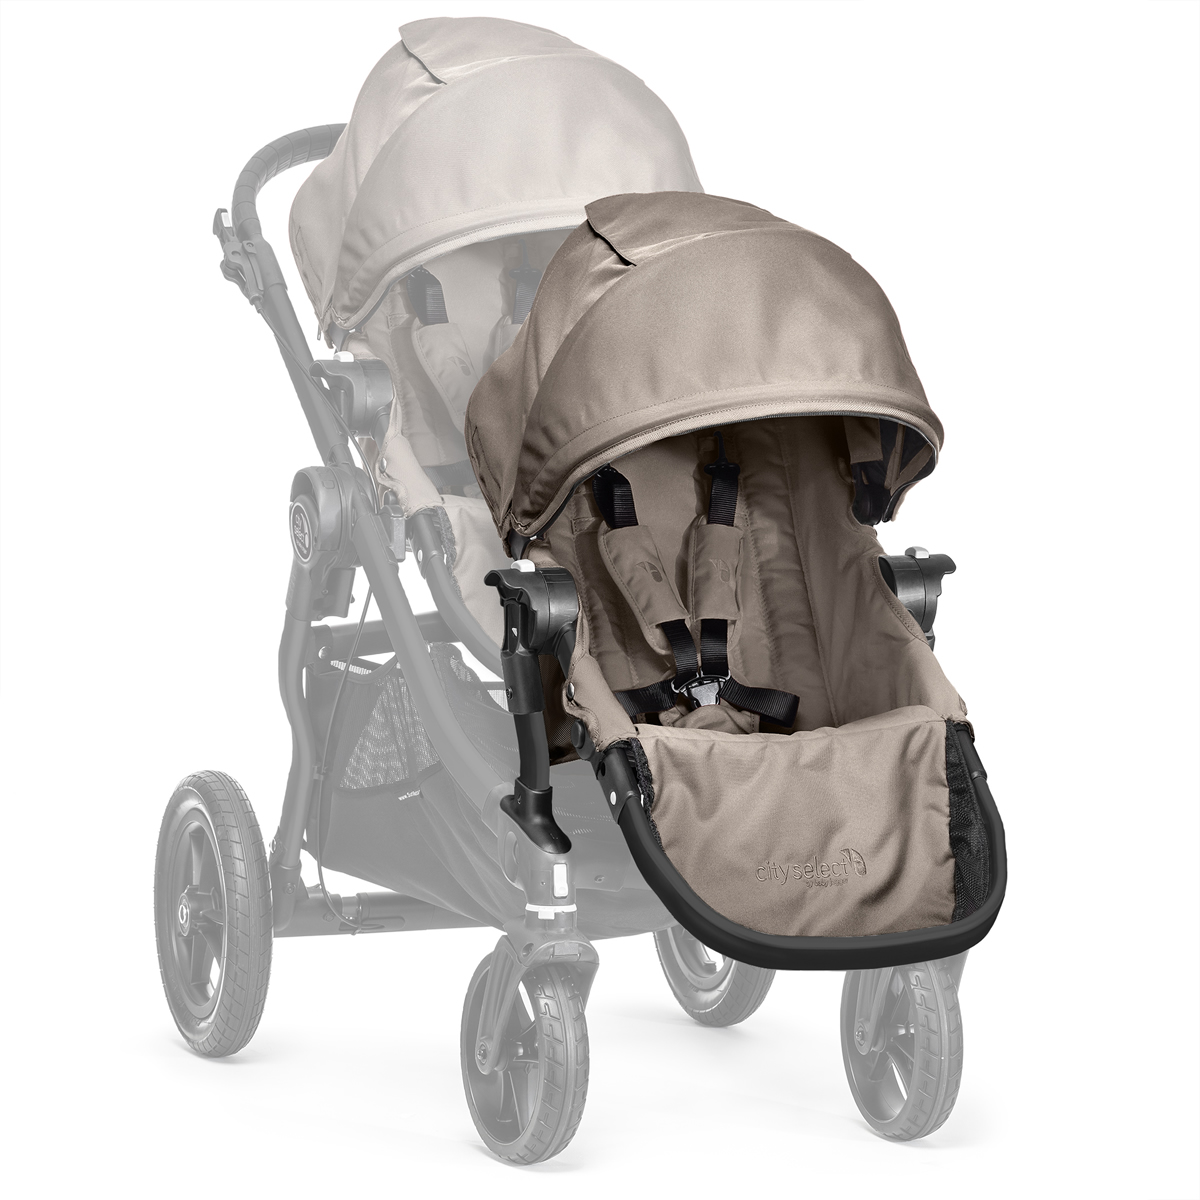 Baby Jogger 2014 City Select Second Seat - Sand